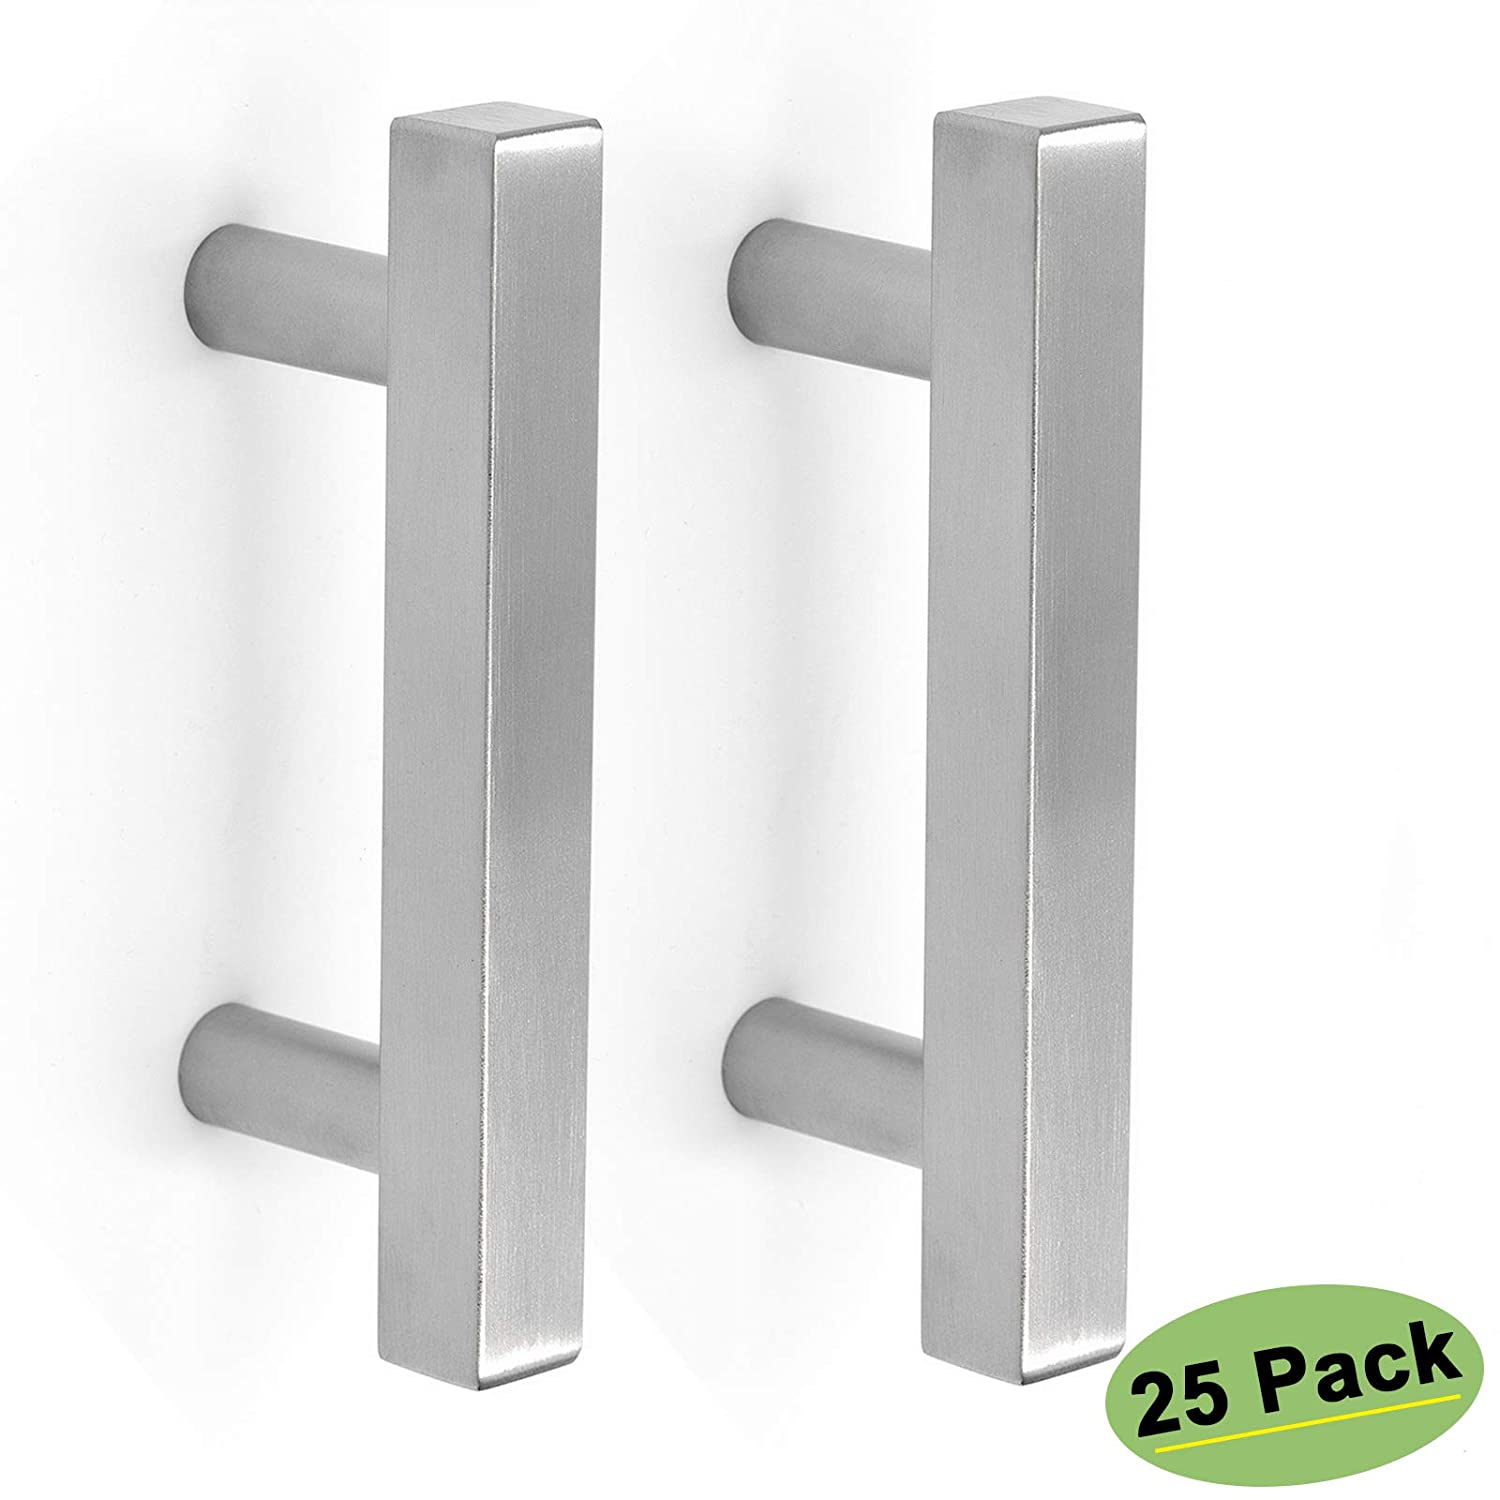 homdiy 3 in Cabinet Handles Brushed Nickel 25 Pack - HDJ22SN T Knob Cabinet Pulls 3in Cabinet Hardware Pulls Metal Drawer Pulls for Kitchen, Bathroom, Closet, Wardrobe